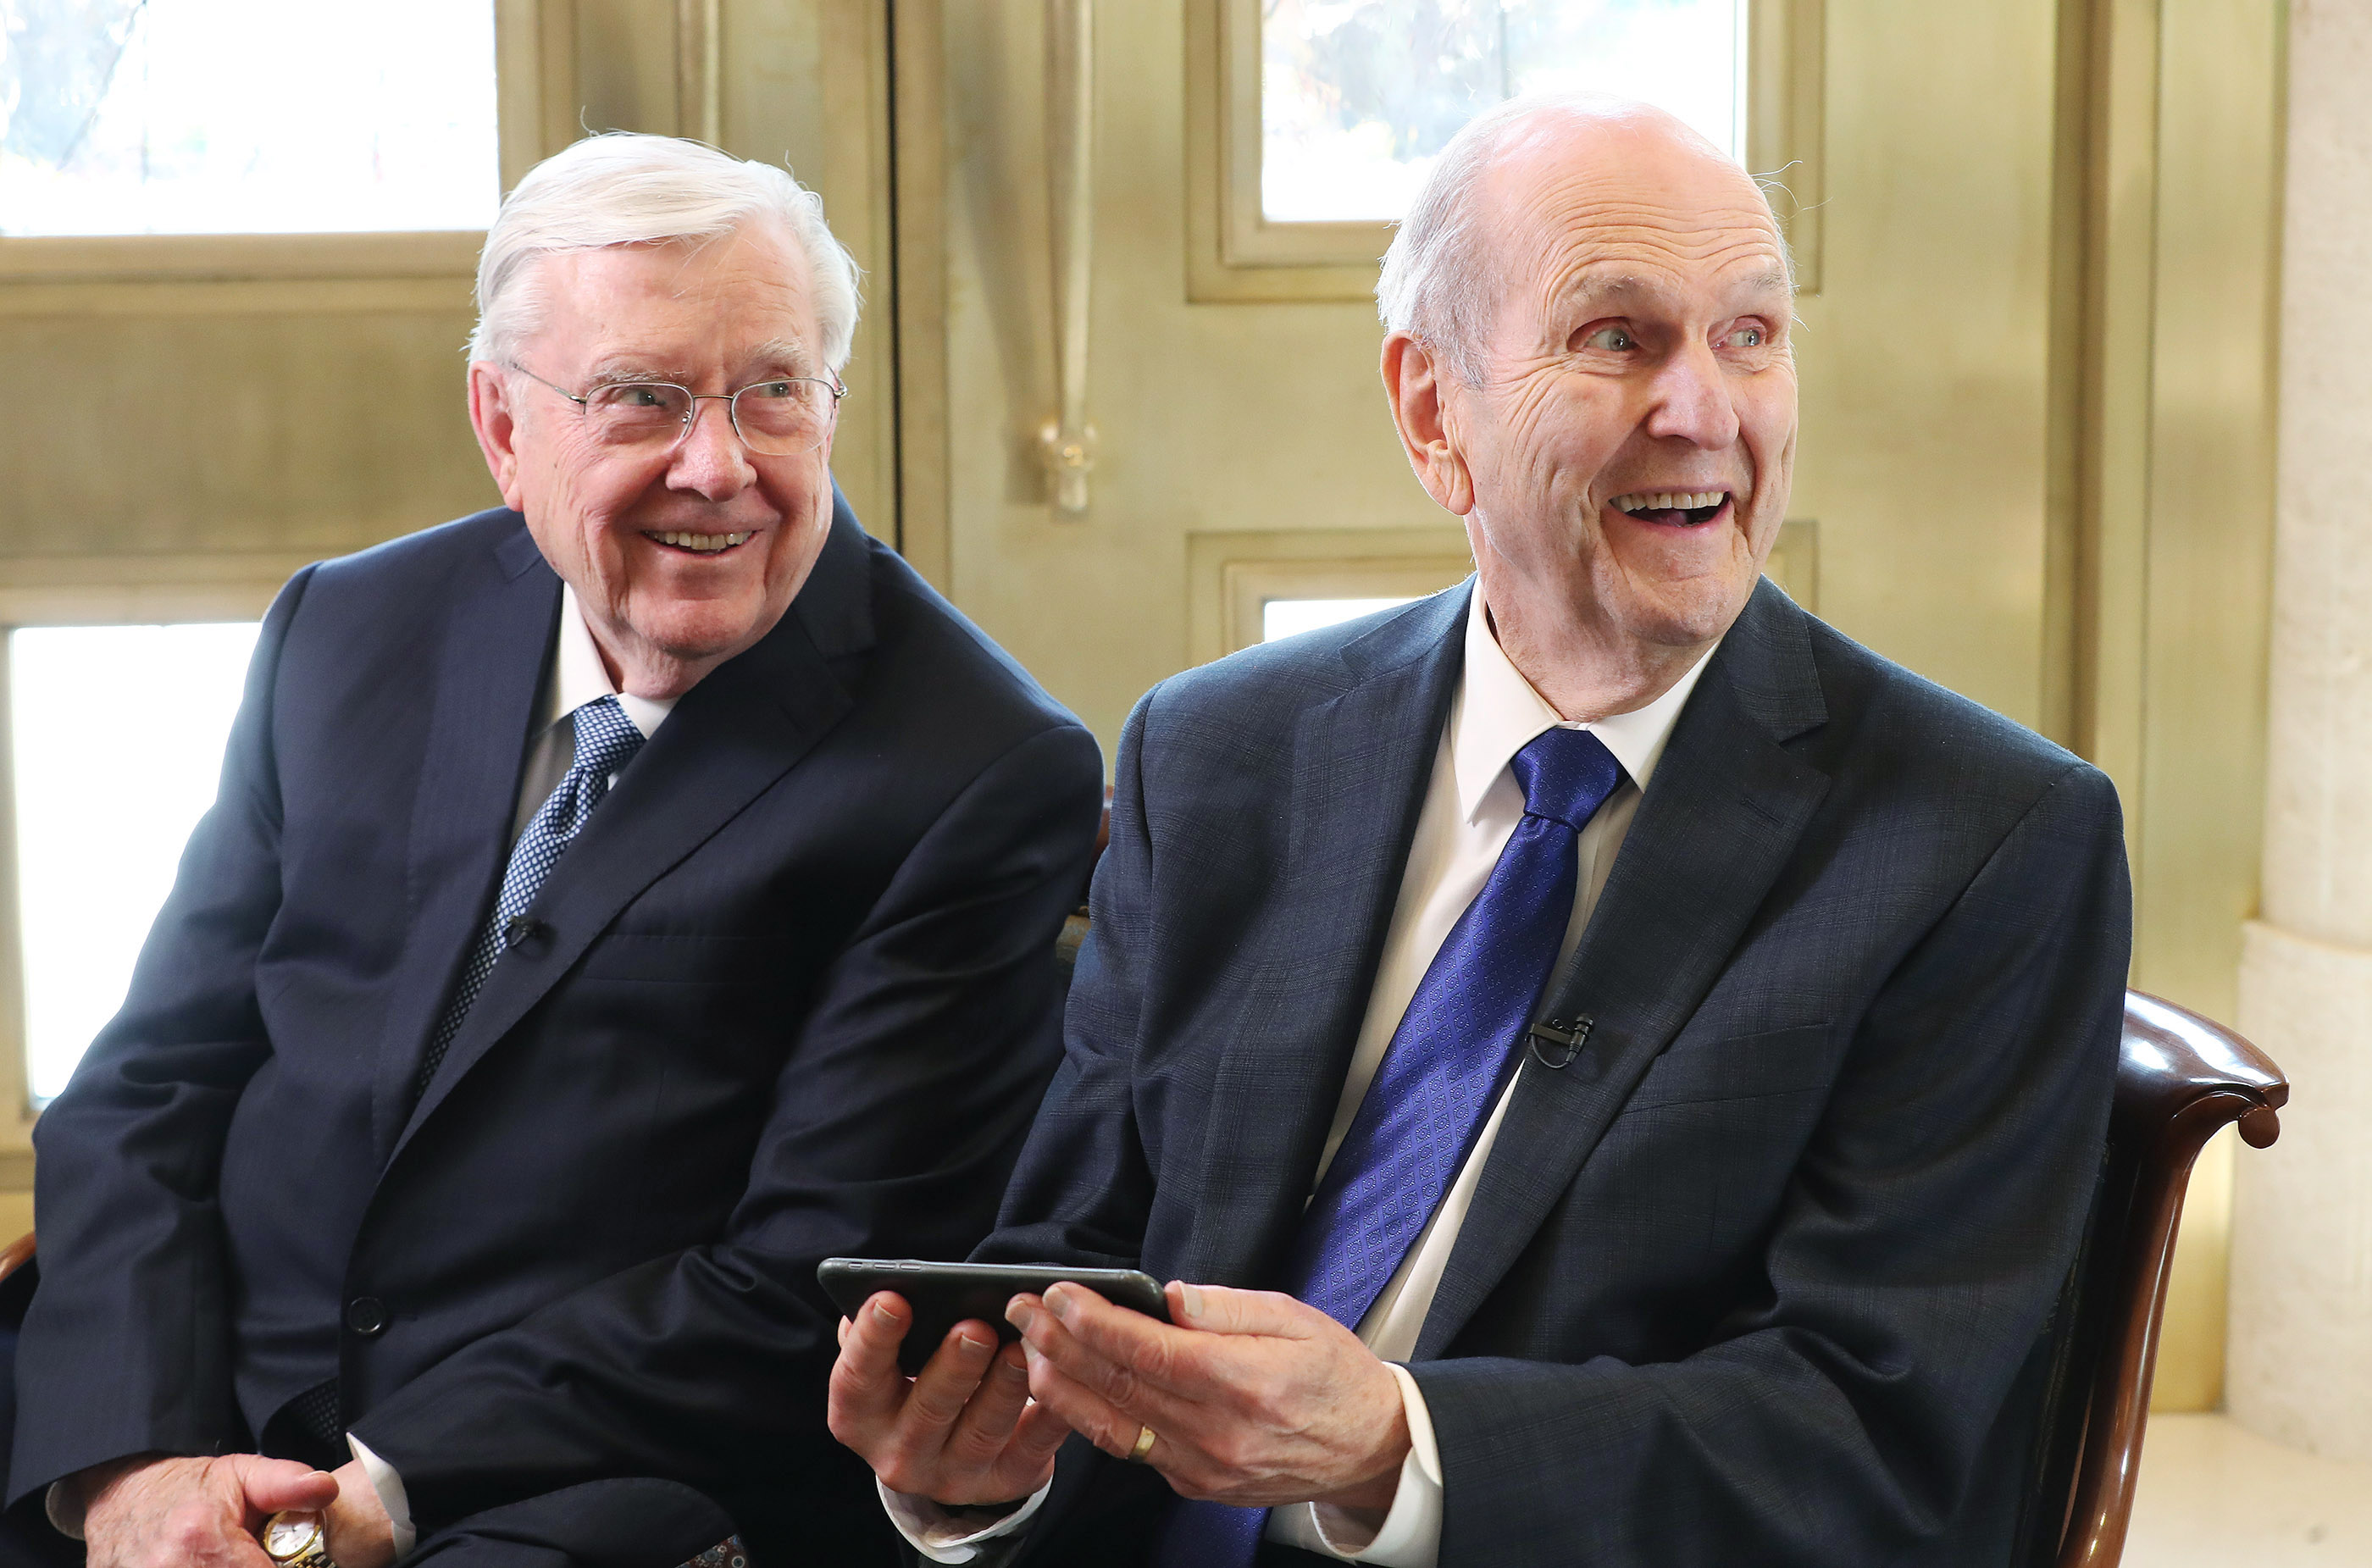 President M. Russell Ballard and President Russell M. Nelson of The Church of Jesus Christ of Latter-day Saints react to an photograph taken earlier in the day of themselves in Rome, Italy on Monday, March 11, 2019.